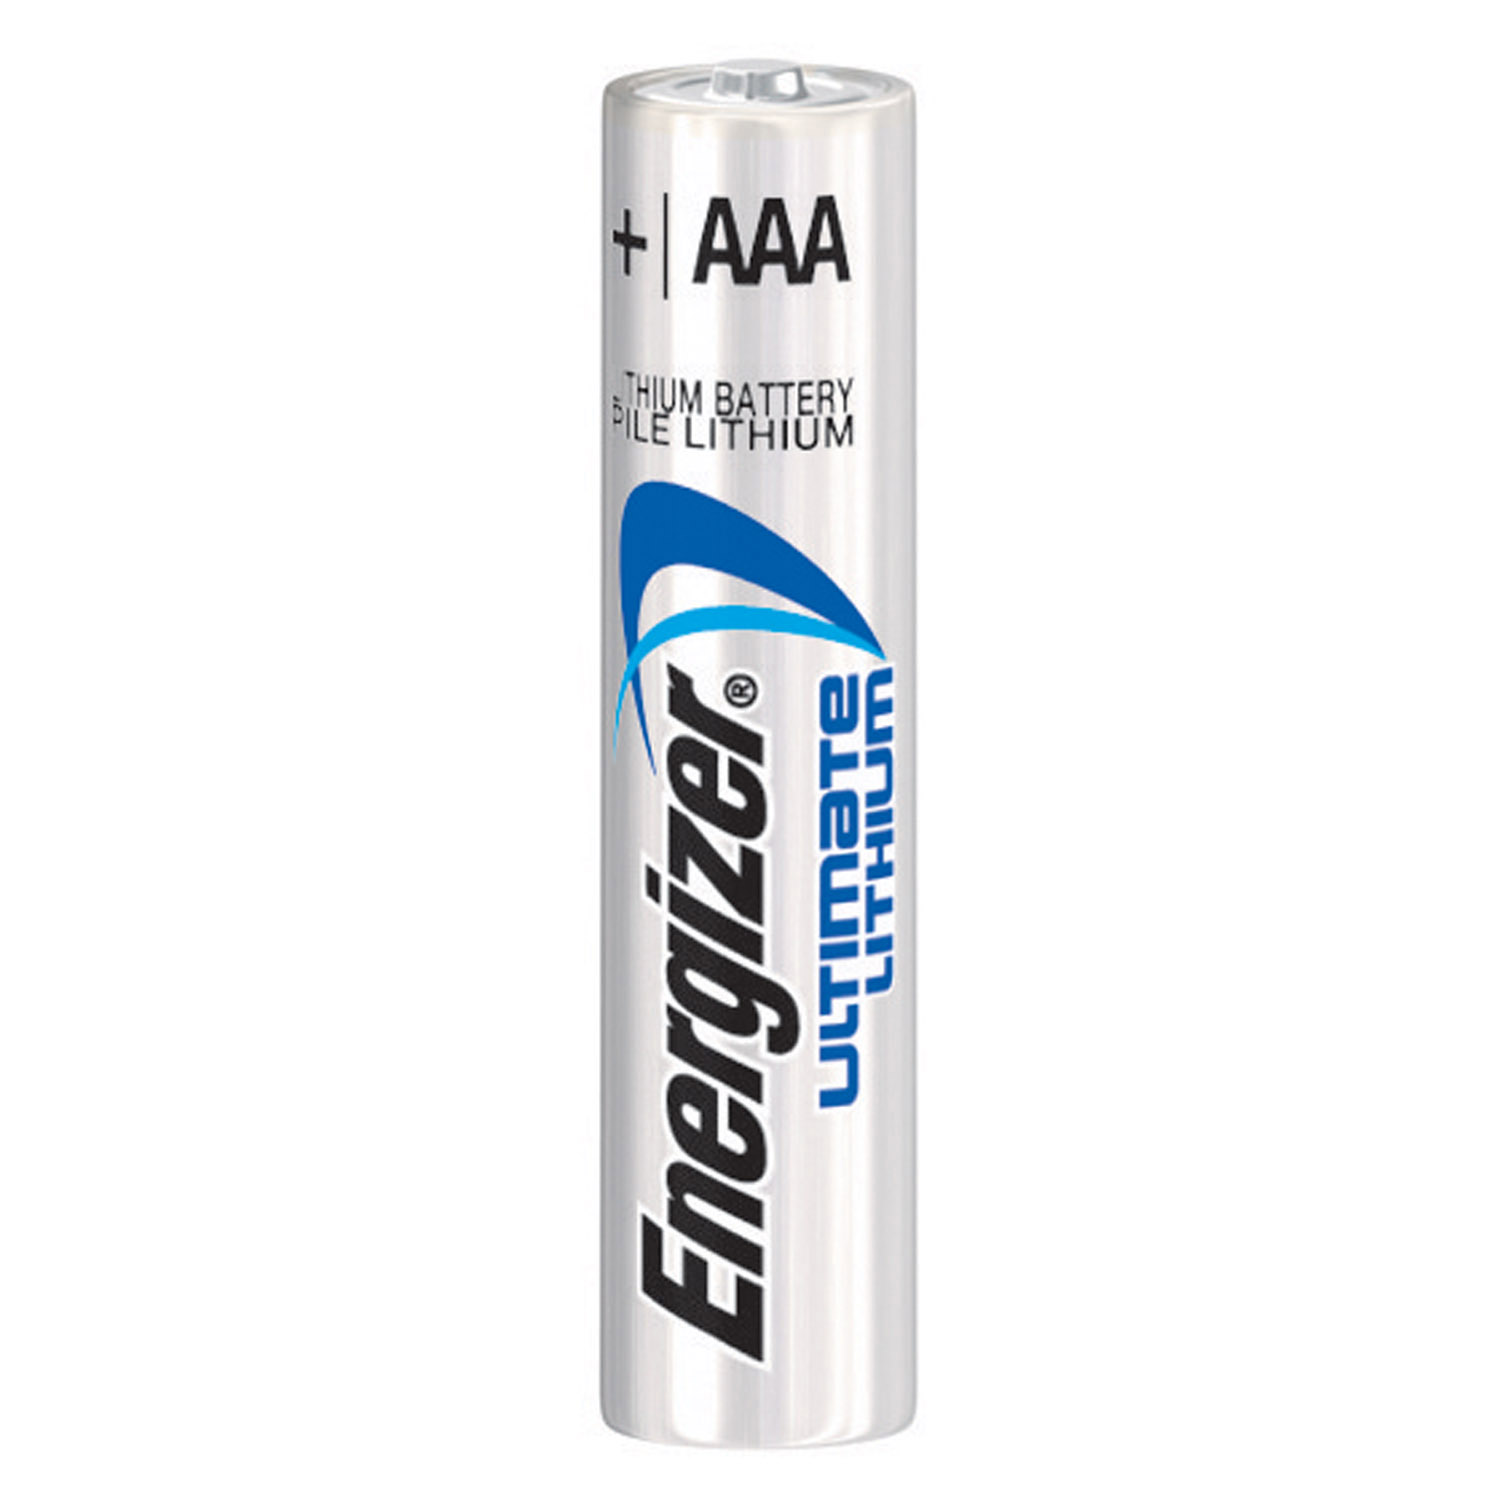 Energizer Ultimate AAA Lithium Batteries (4 Pack)